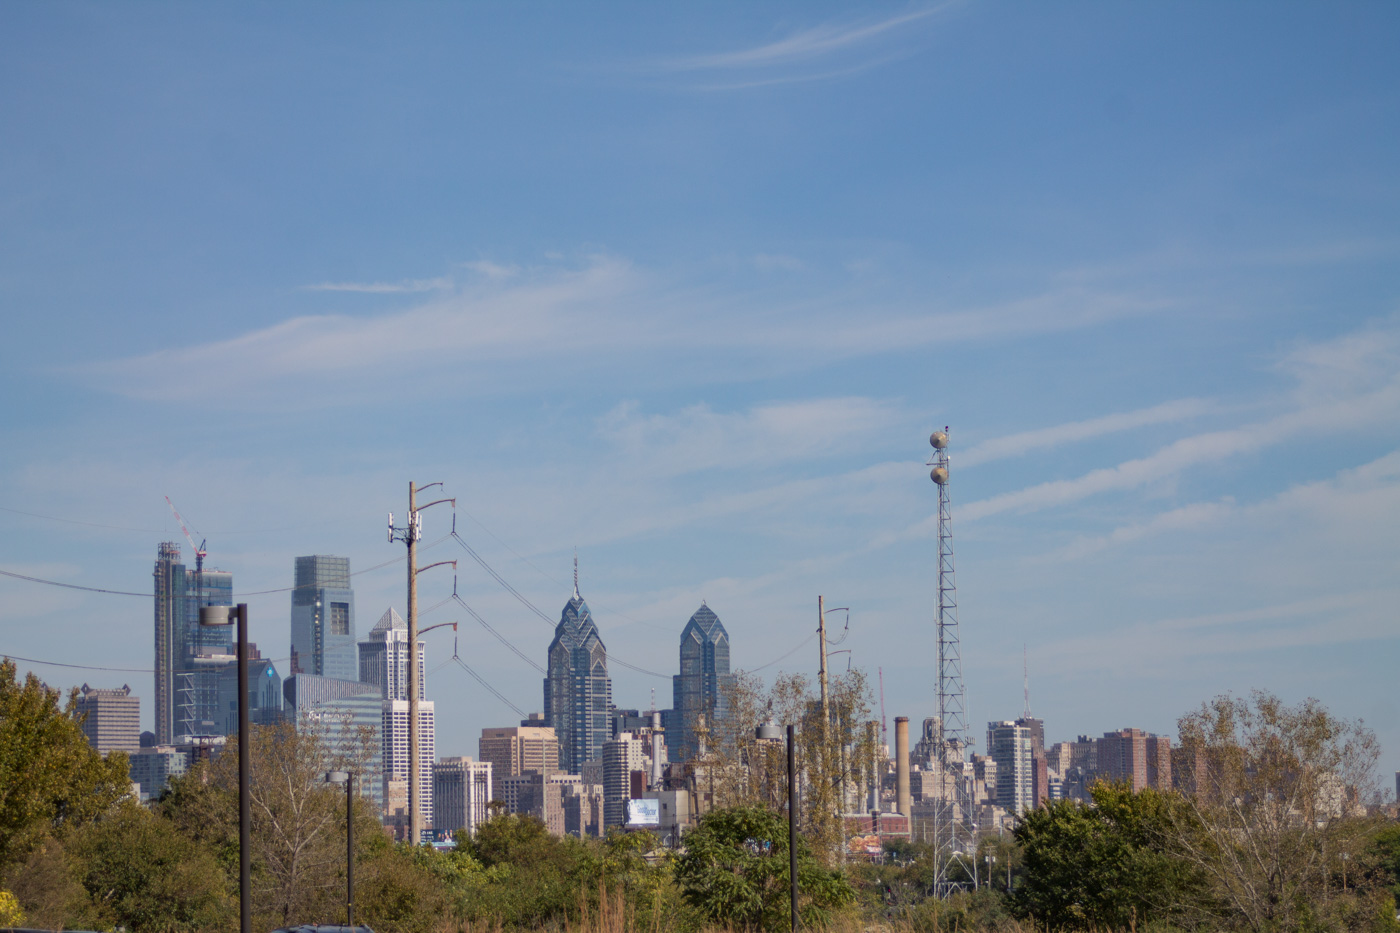 Philadelphia as Seen from Bartram's Garden